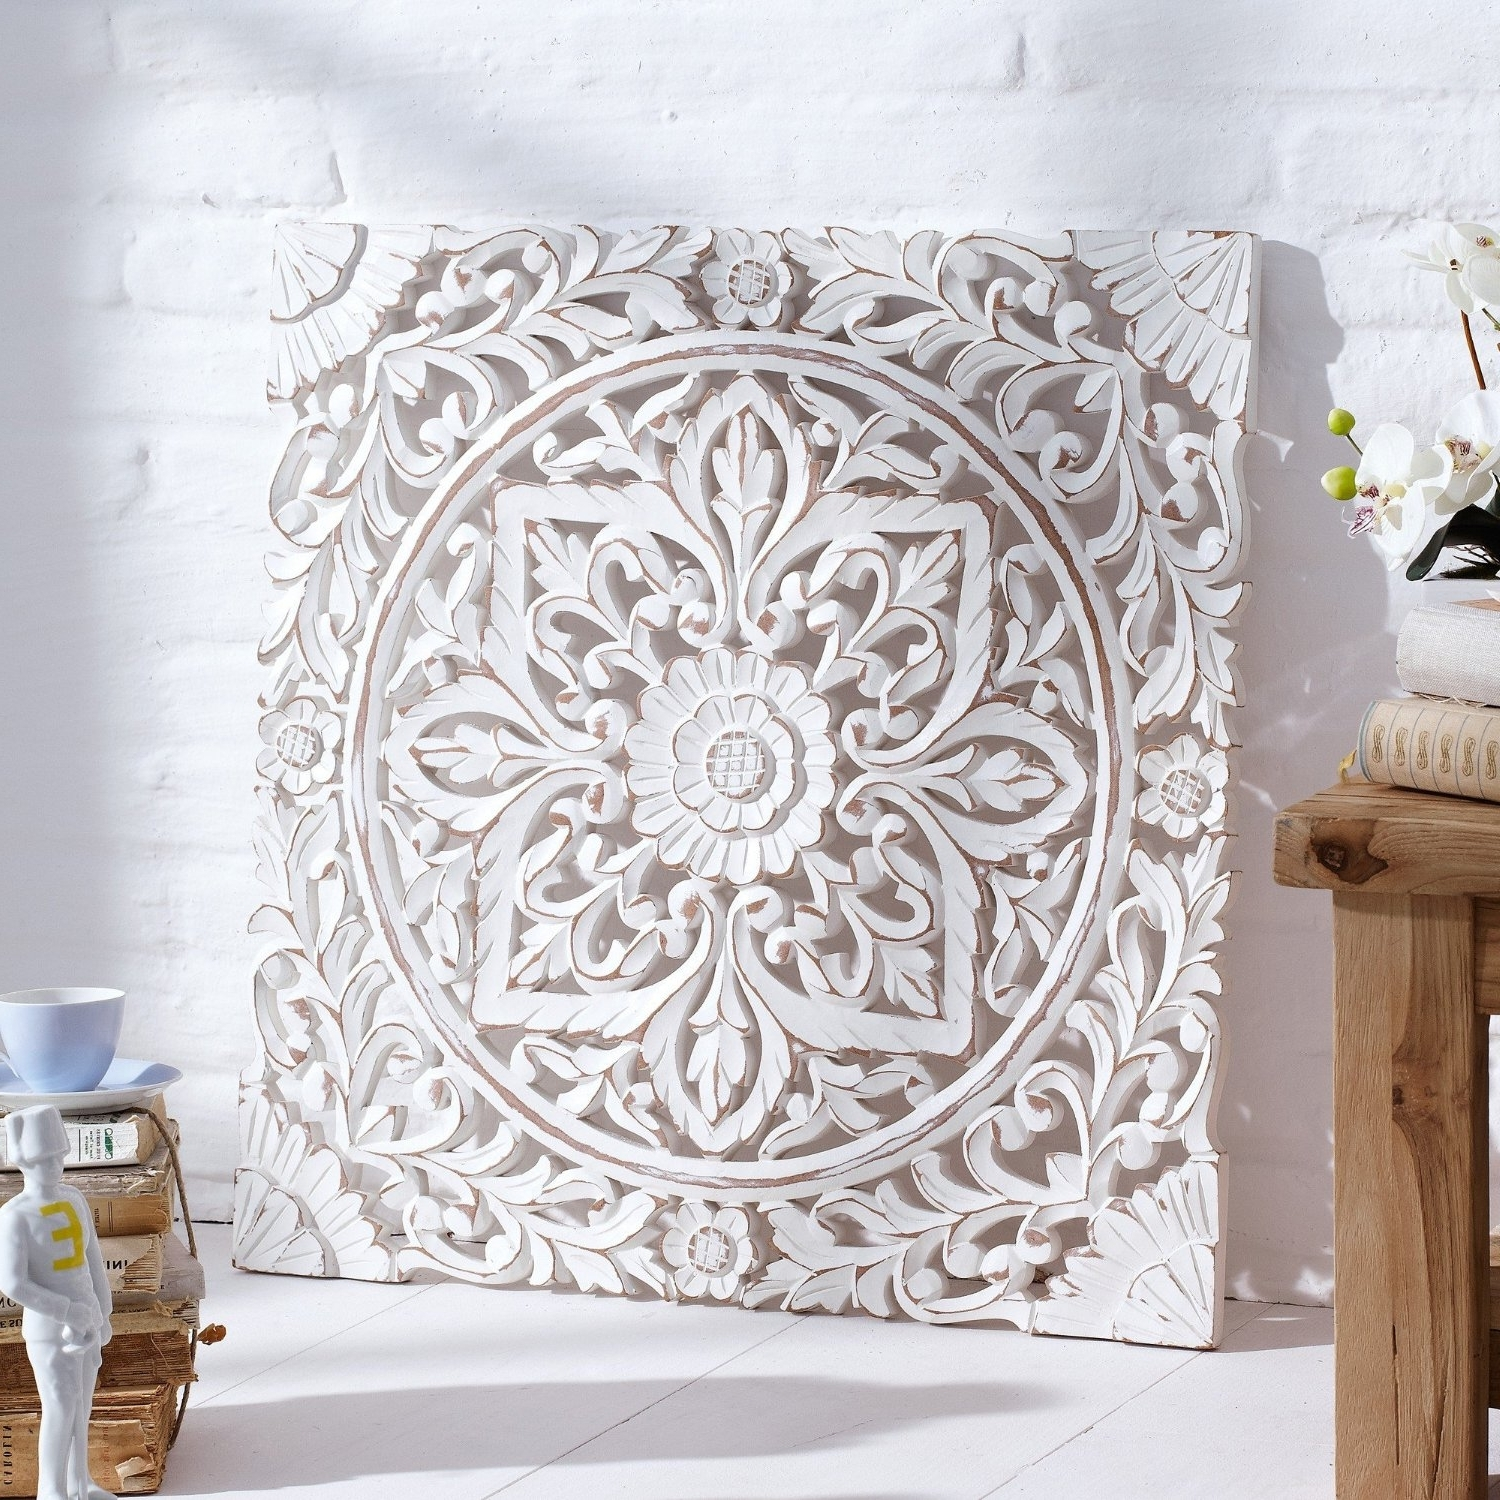 Carved Wood Wall Art Australia 15 The Best White Wooden Wall Art